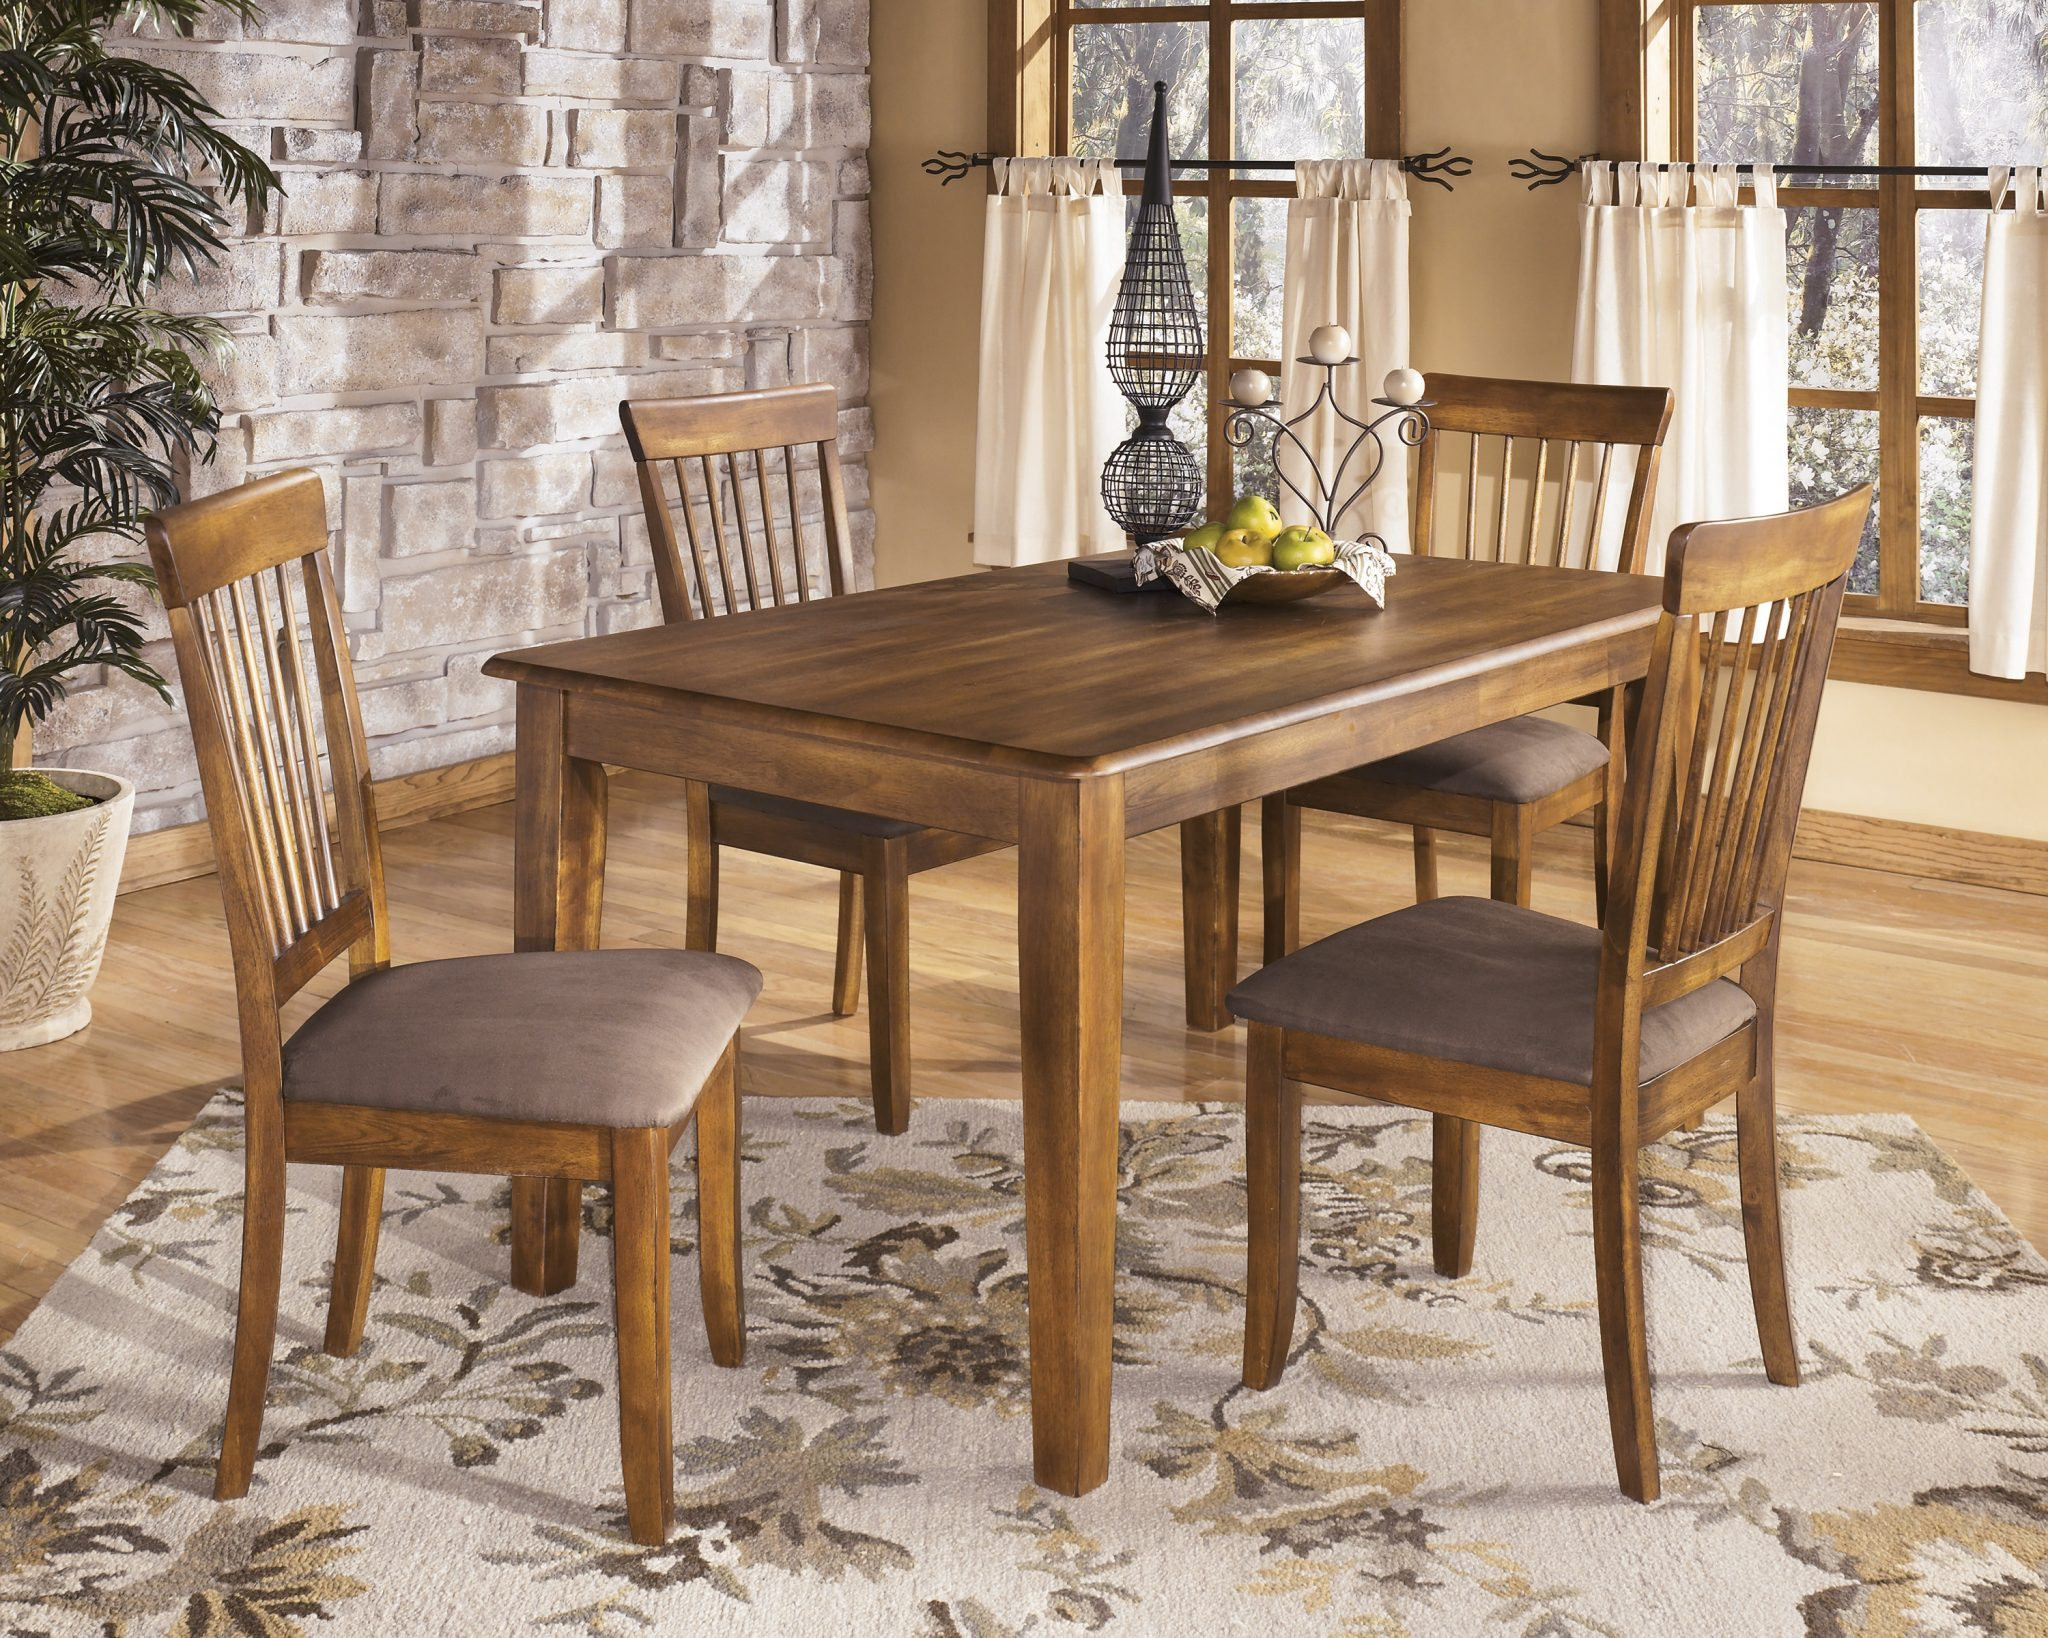 Best ideas about Ashley Furniture Dining Sets . Save or Pin Best Furniture Mentor OH Furniture Store Ashley Now.